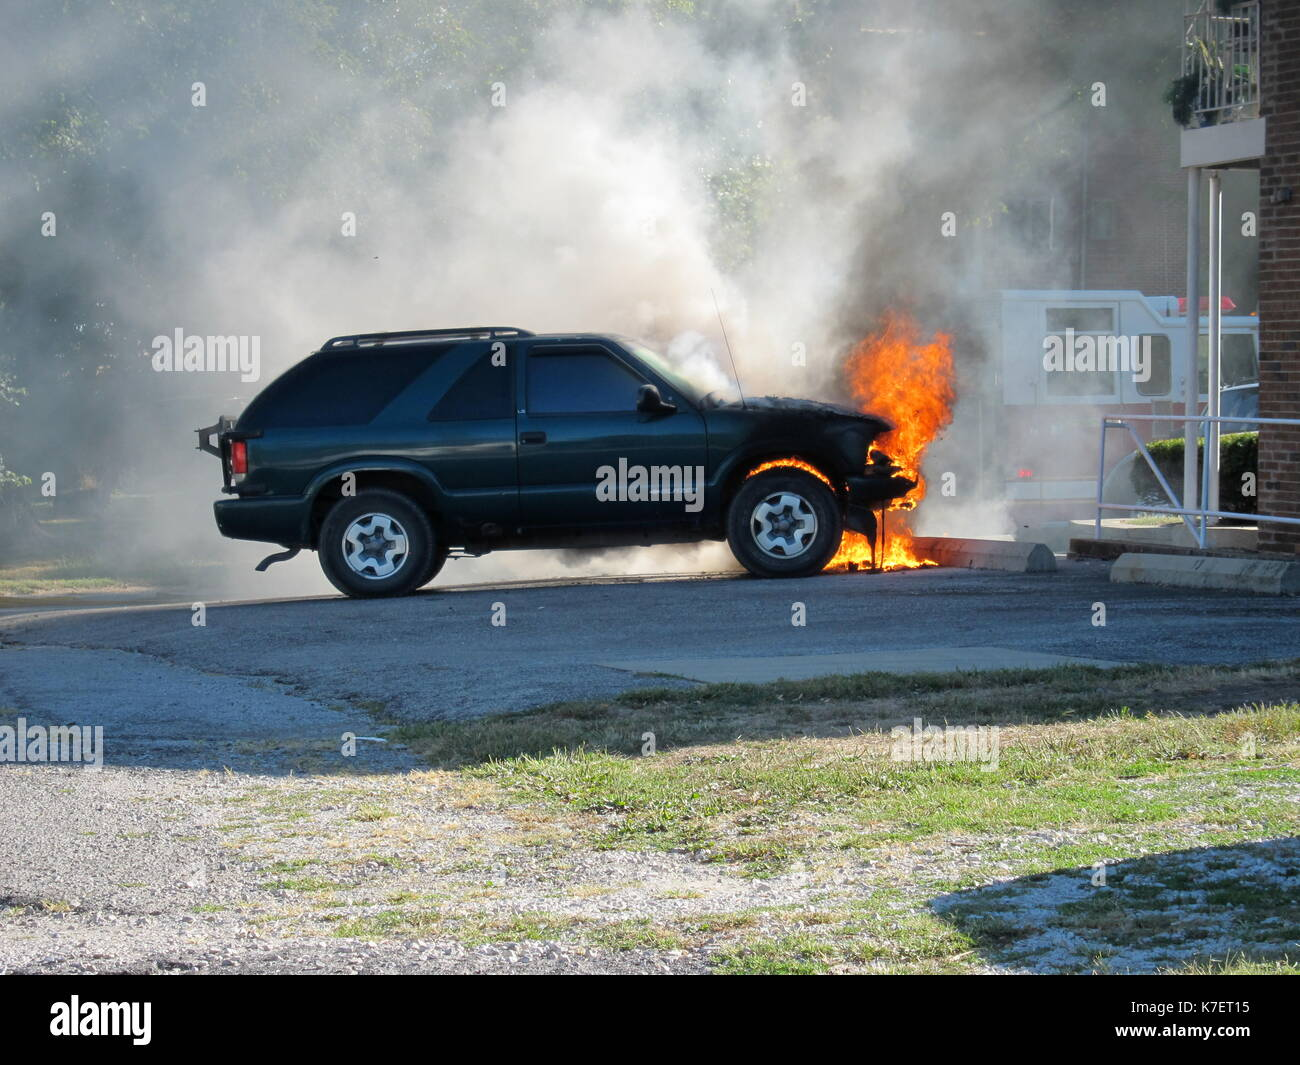 Car on fire - Stock Image